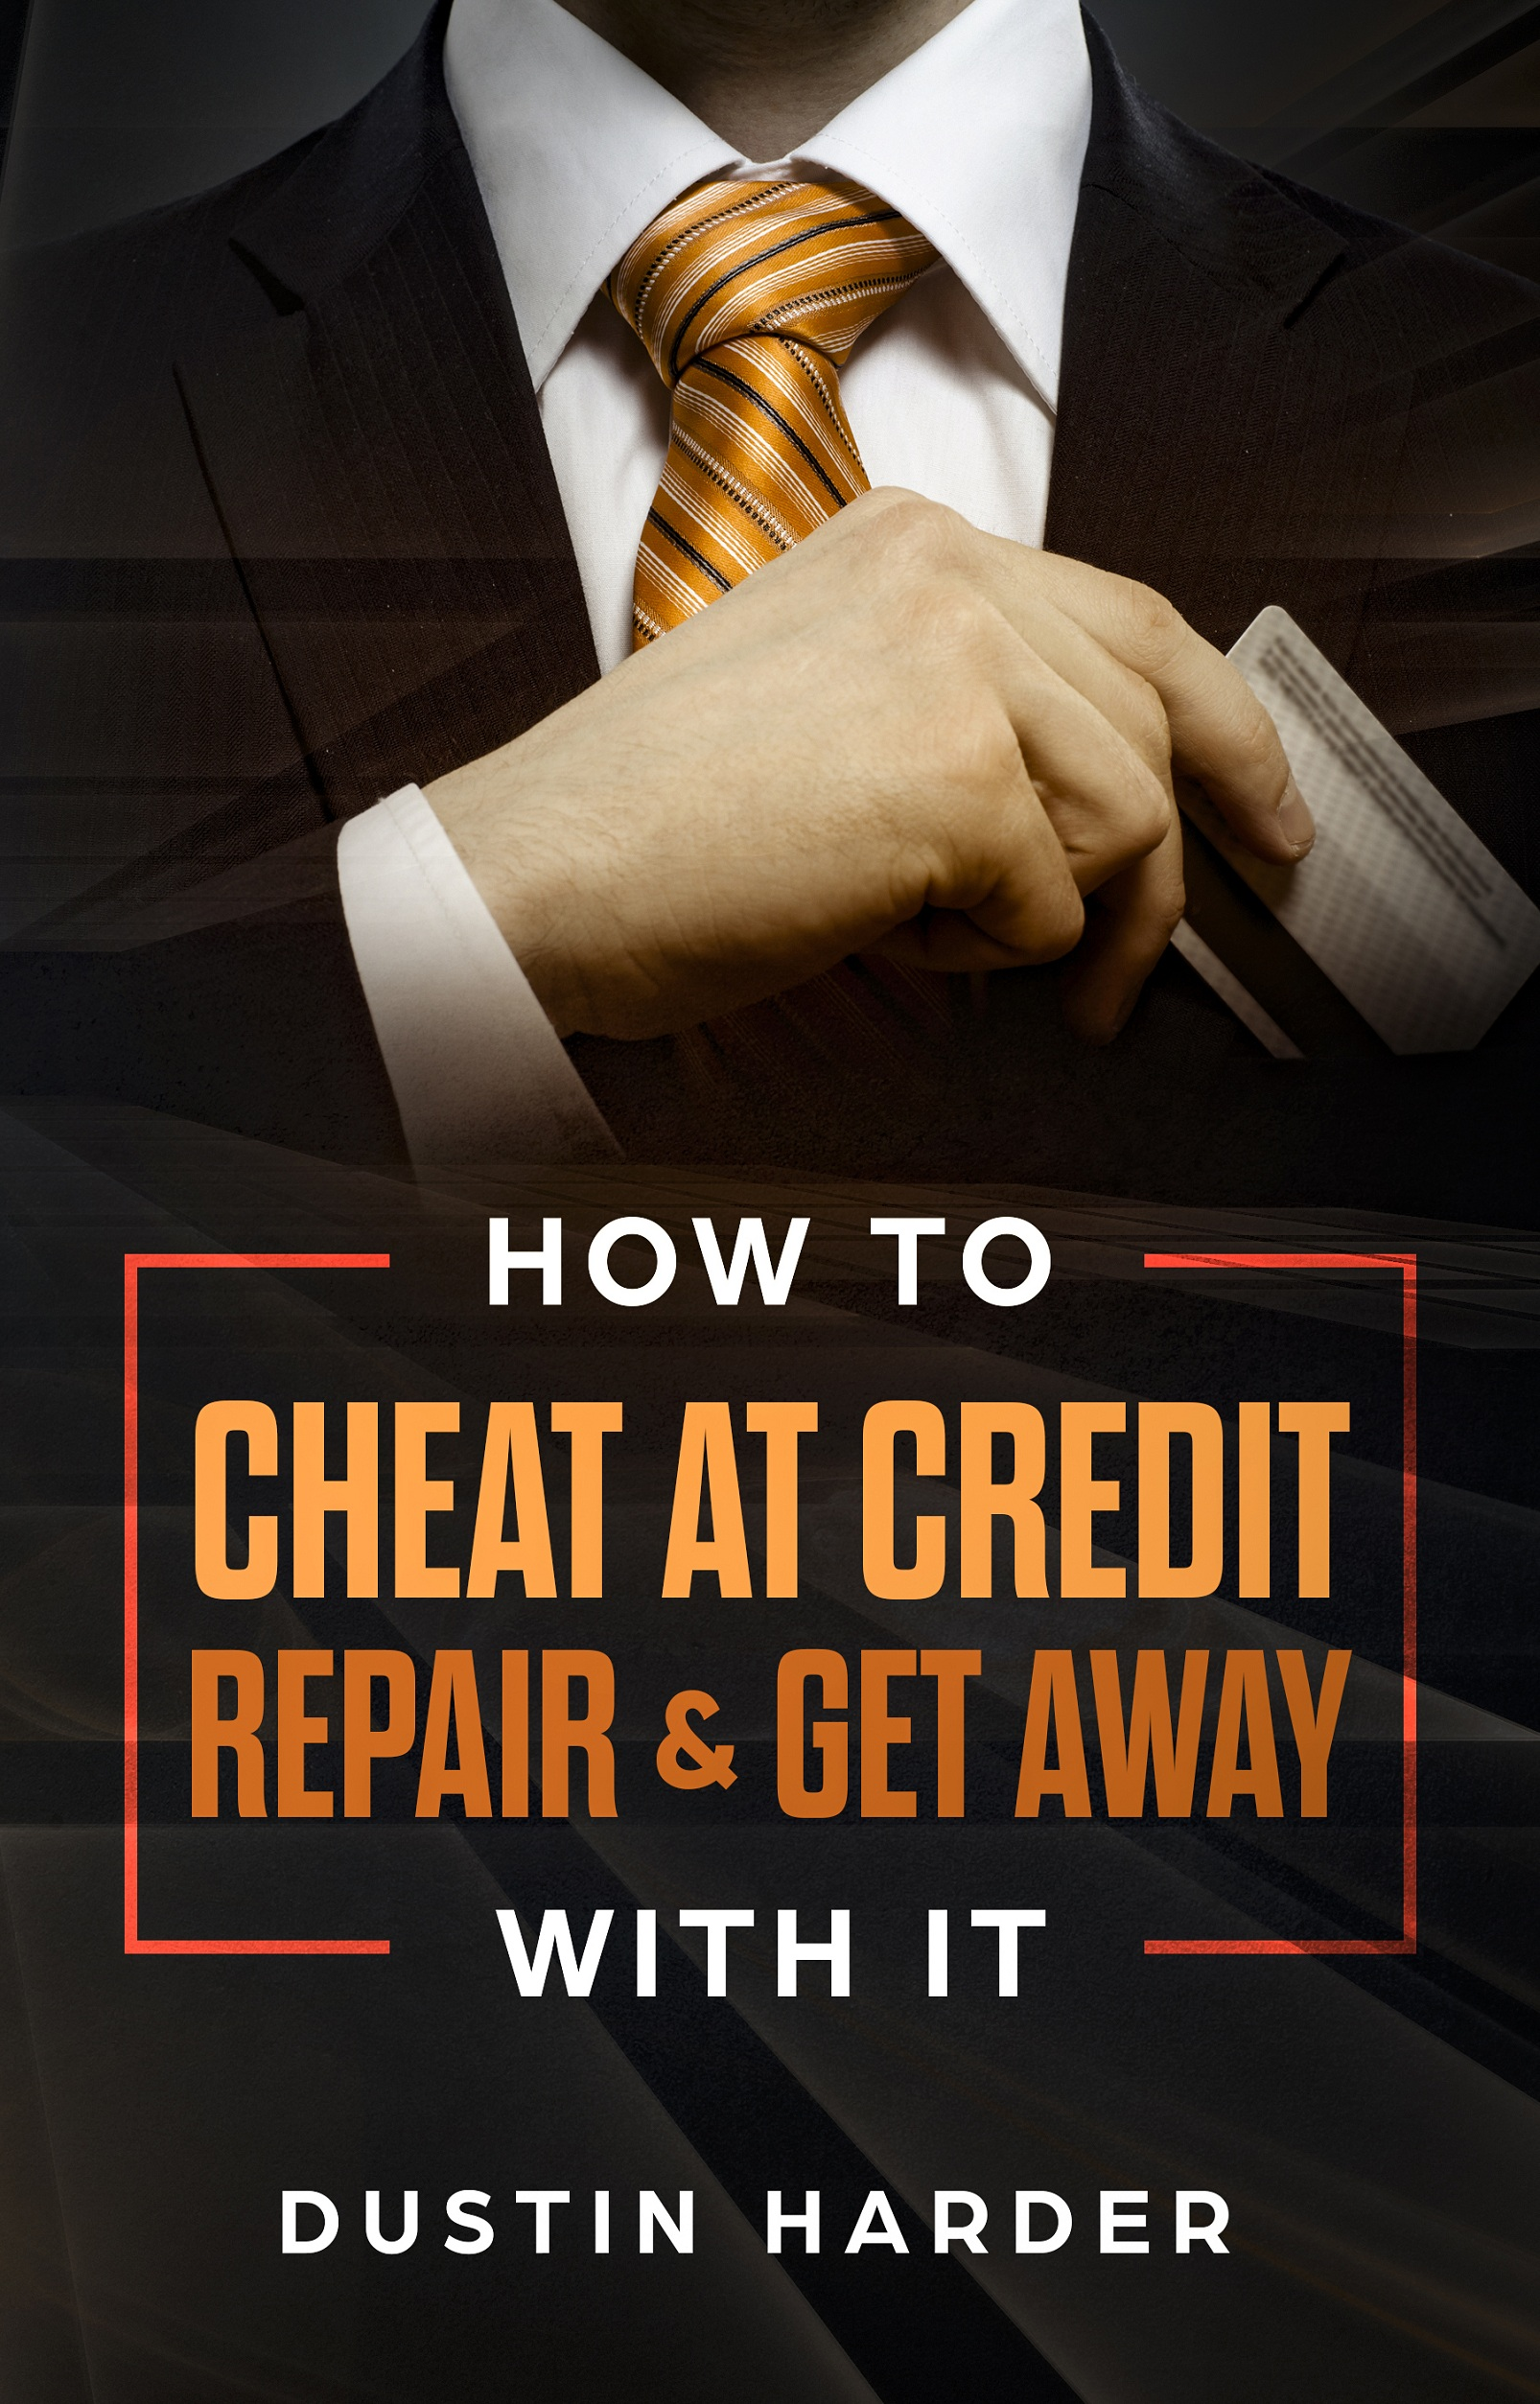 How To Cheat At Credit Repair & Get Away With It